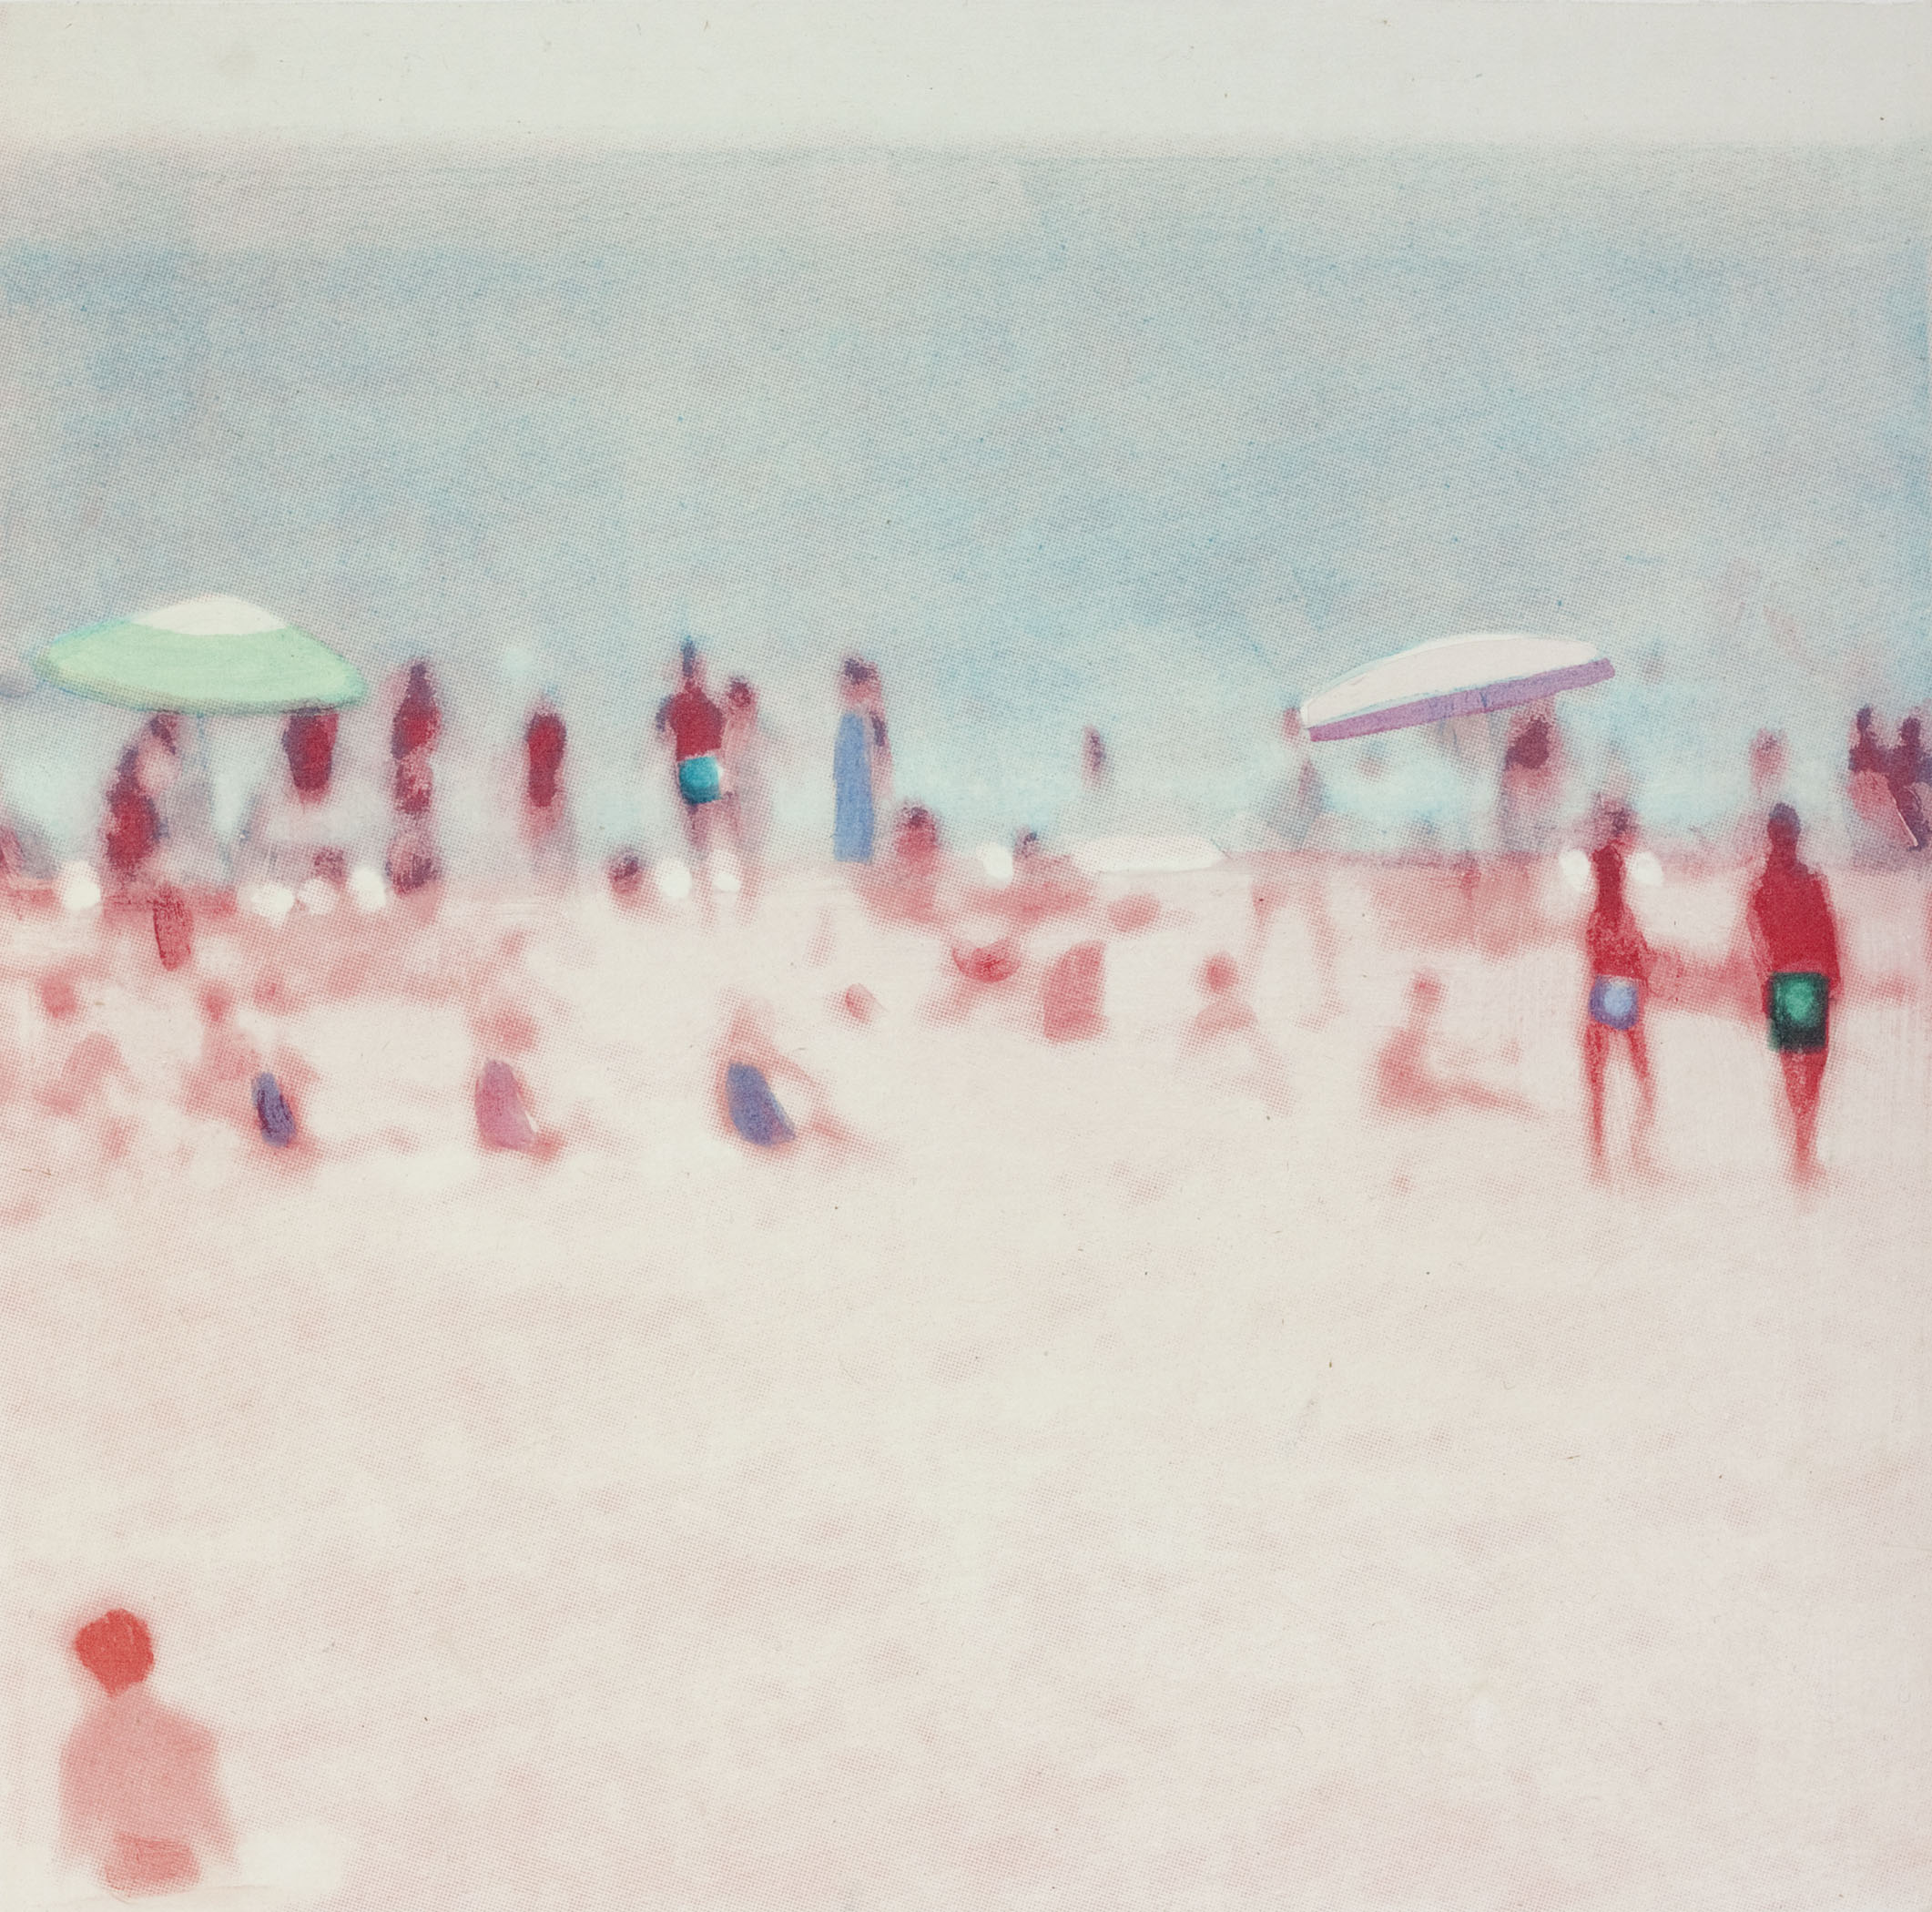 """Wildwood (Detail II),  2014,  Direct to plate photogravure and aquatint, 18 3/4"""" x 18"""", Edition of 35"""